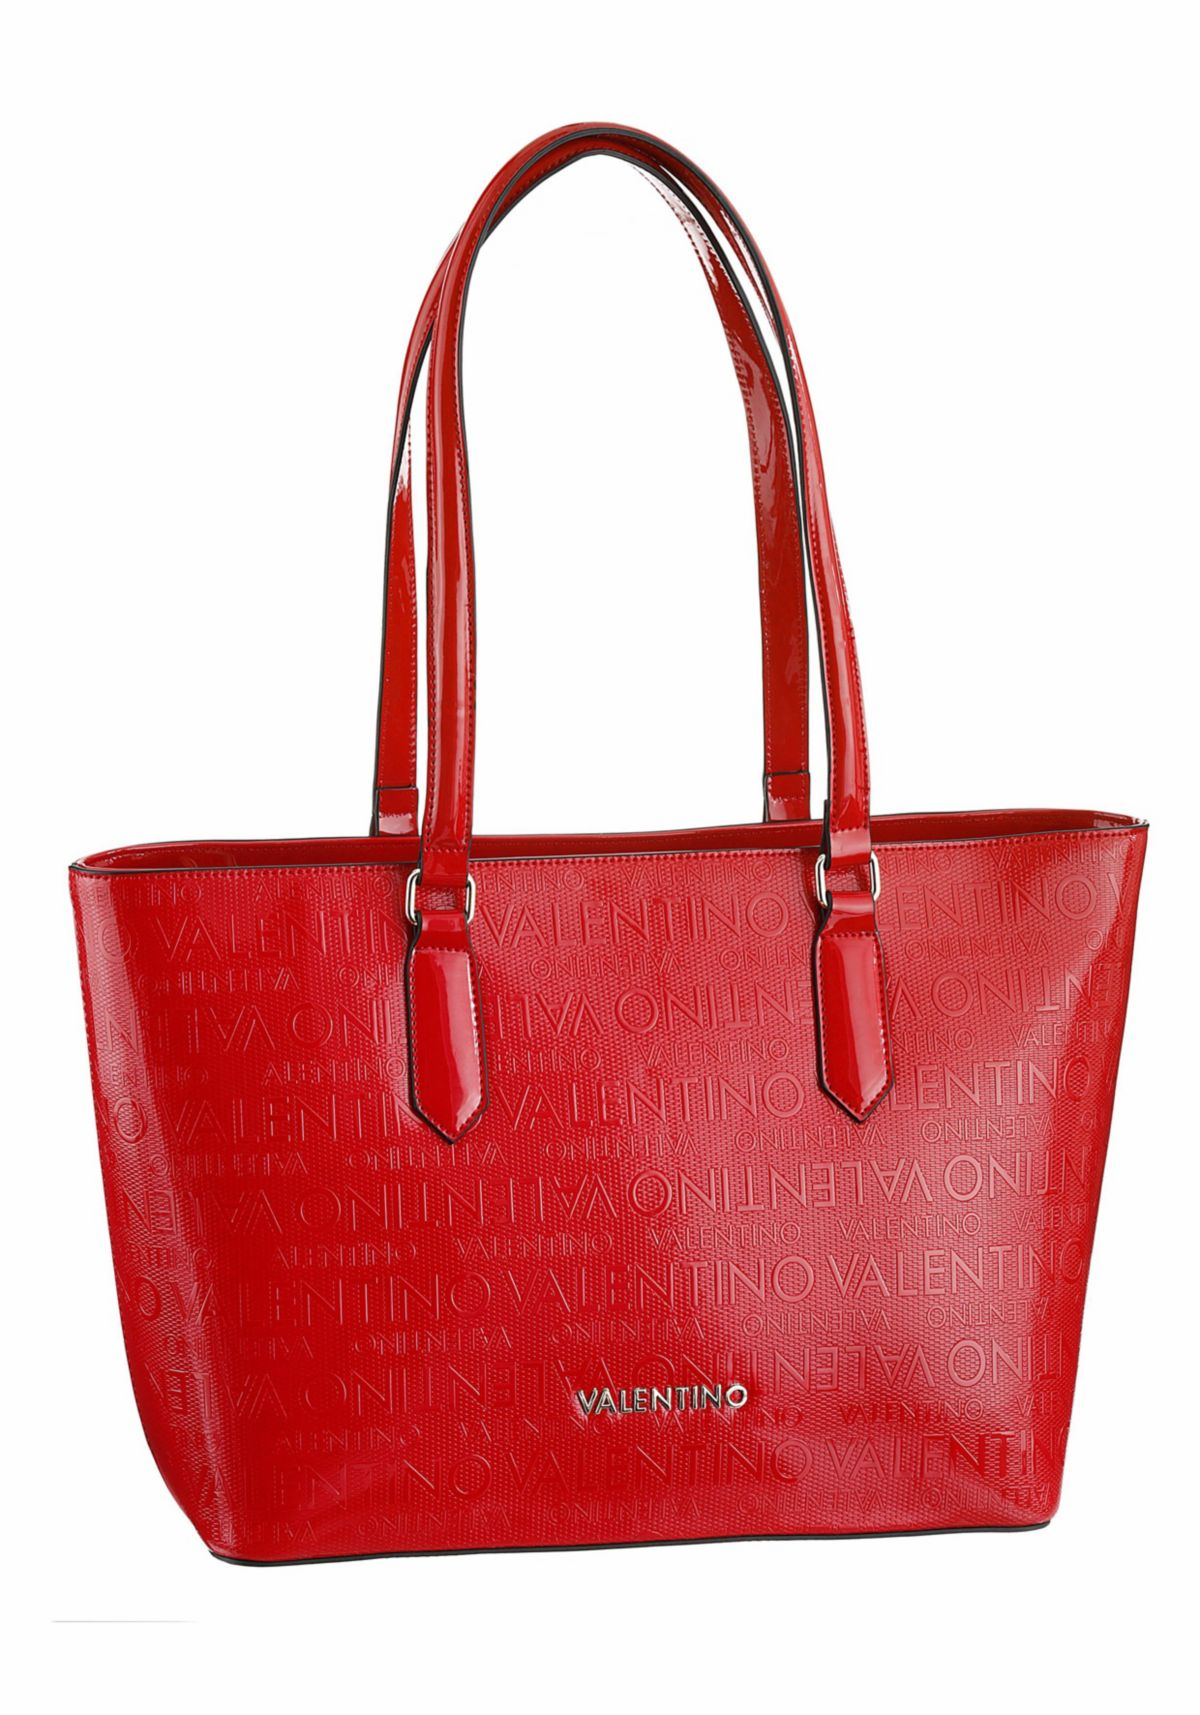 Valentino handbags Shopper »CLOVE«